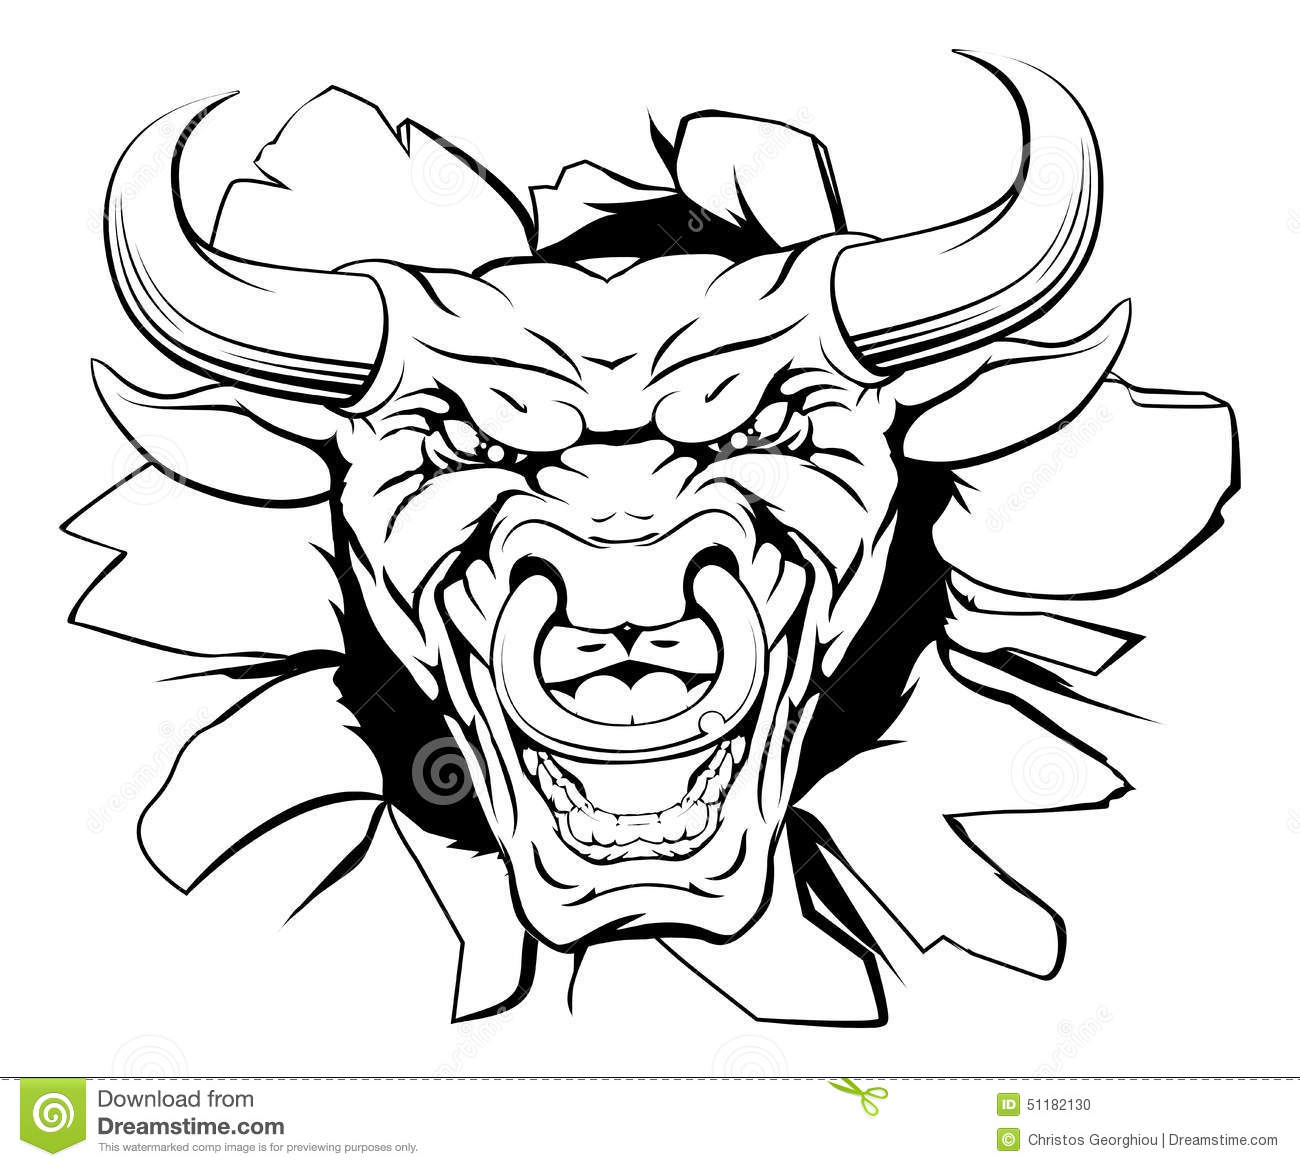 Bull mascot smashing out stock vector. Image of mascot